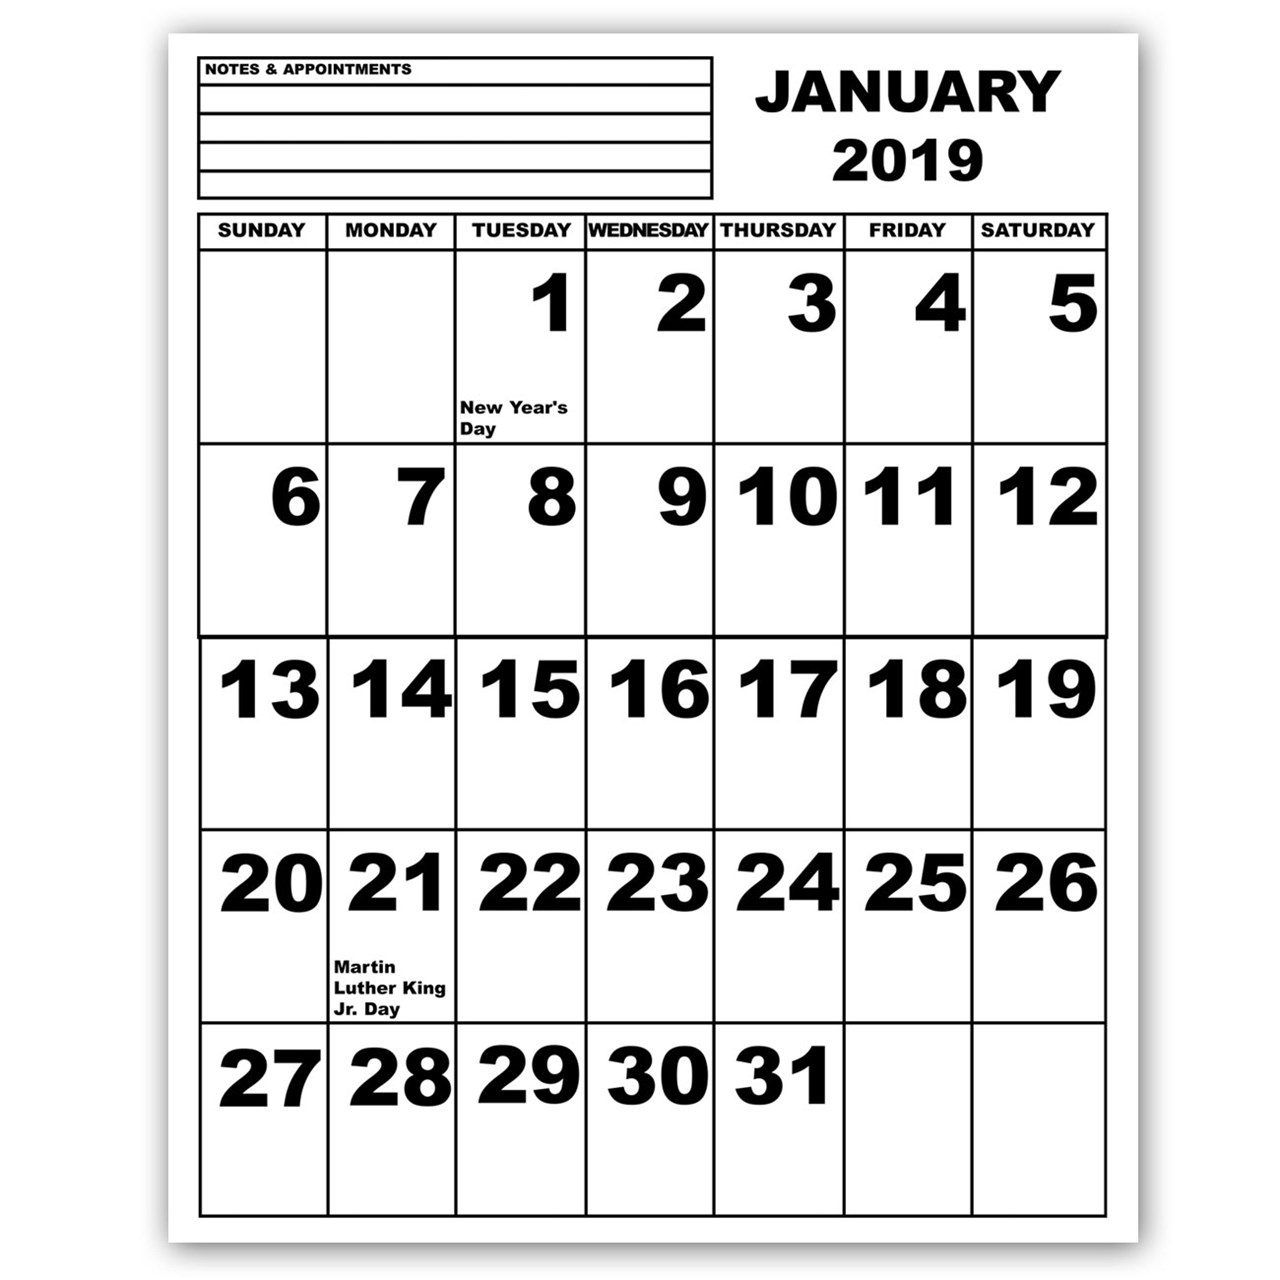 Free Calendar Templates For The Blind - Calendar Inspiration